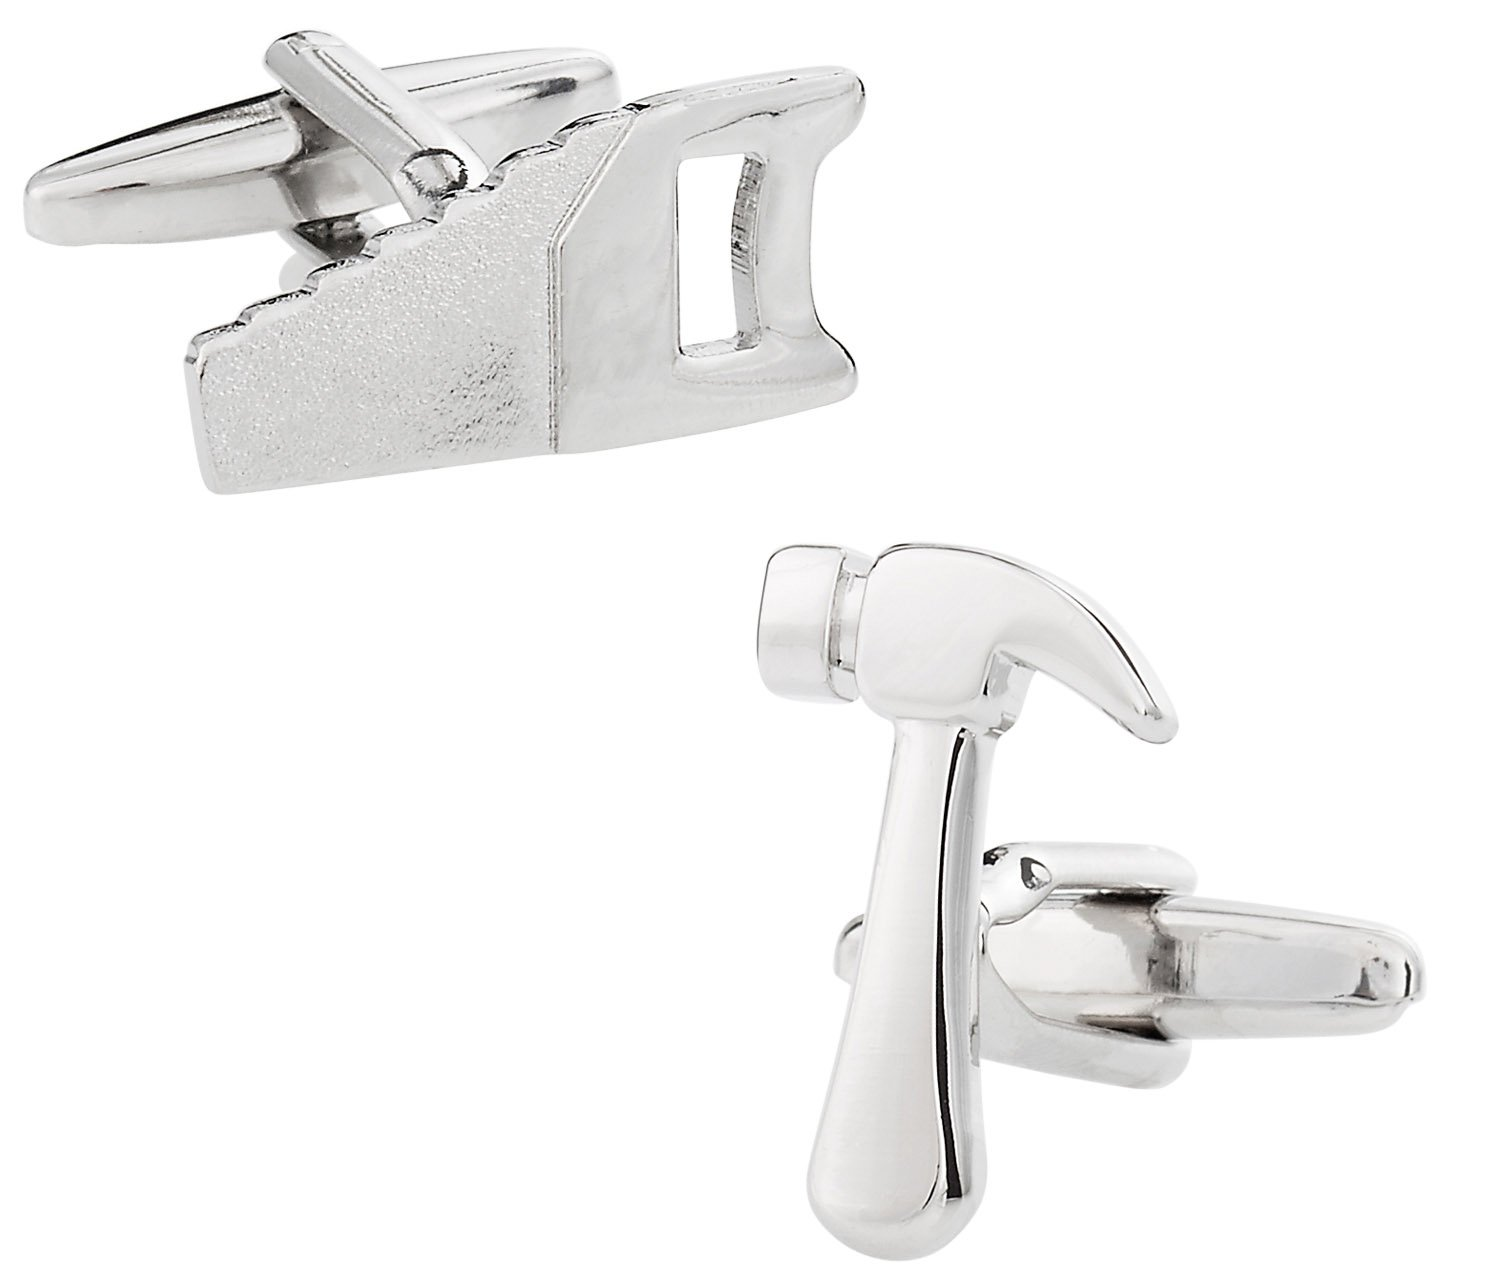 Cuff-Daddy Construction Hammer Saw Cufflinks for Carpenters